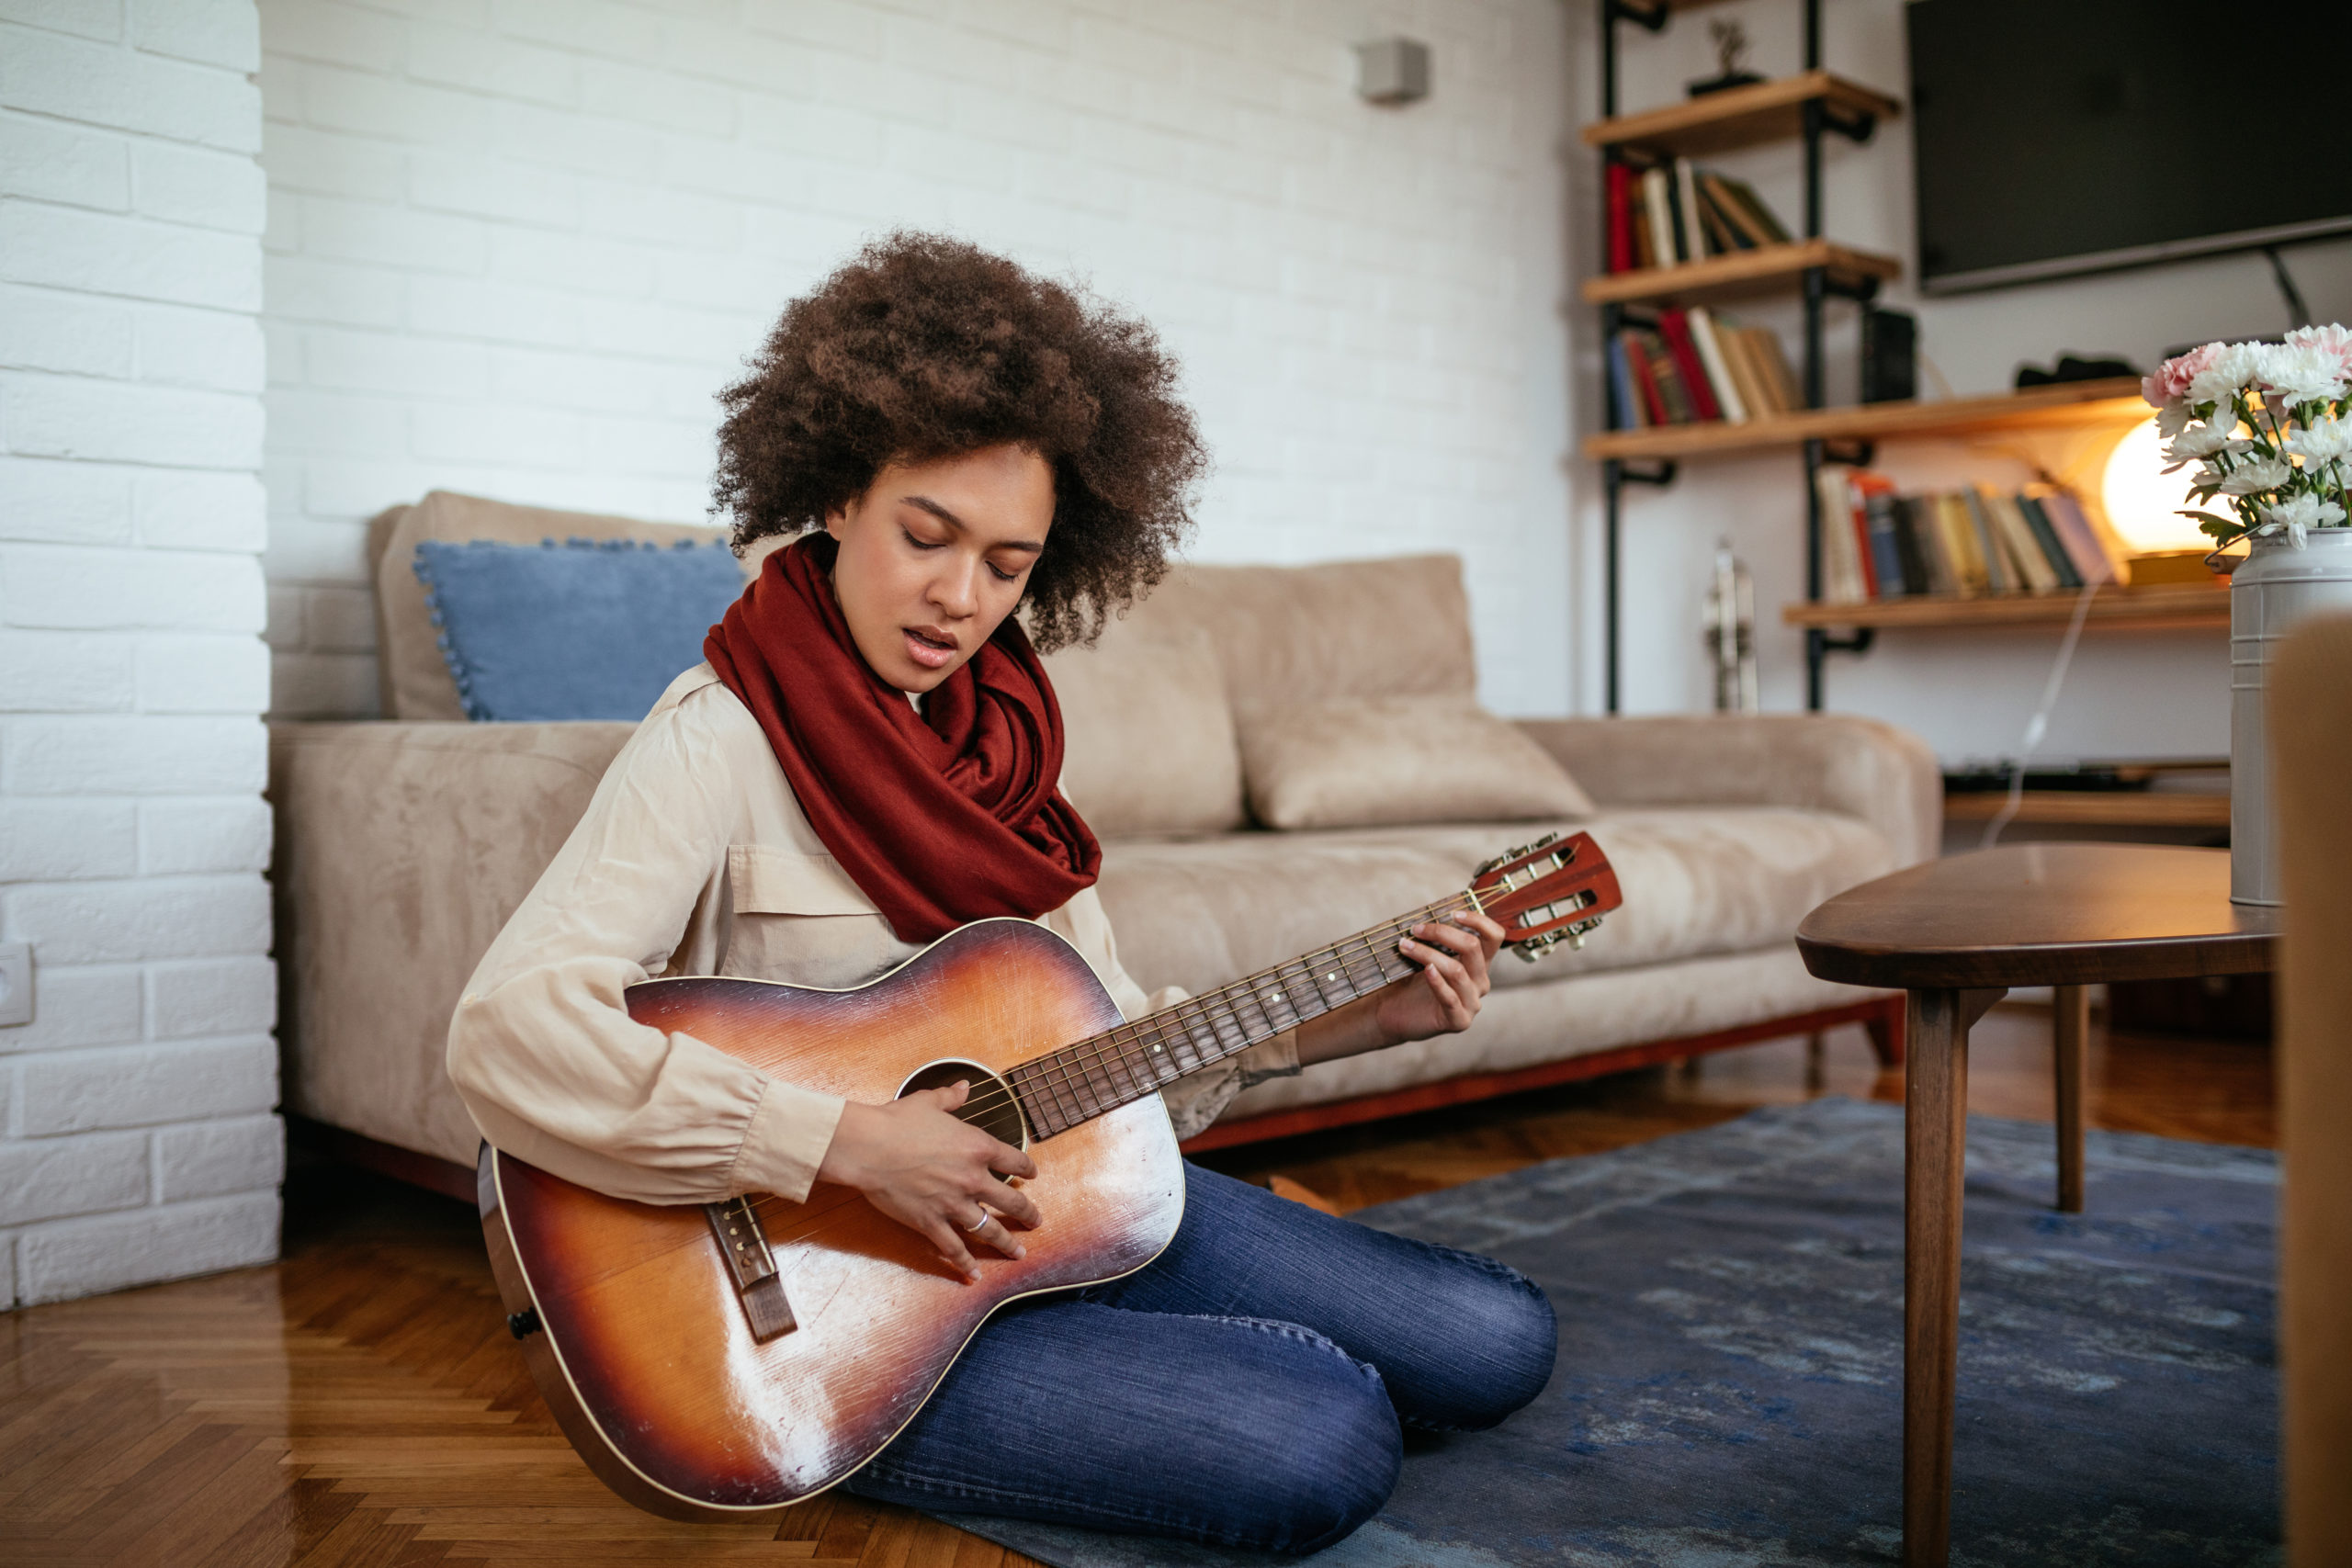 woman playing a guitar at home.